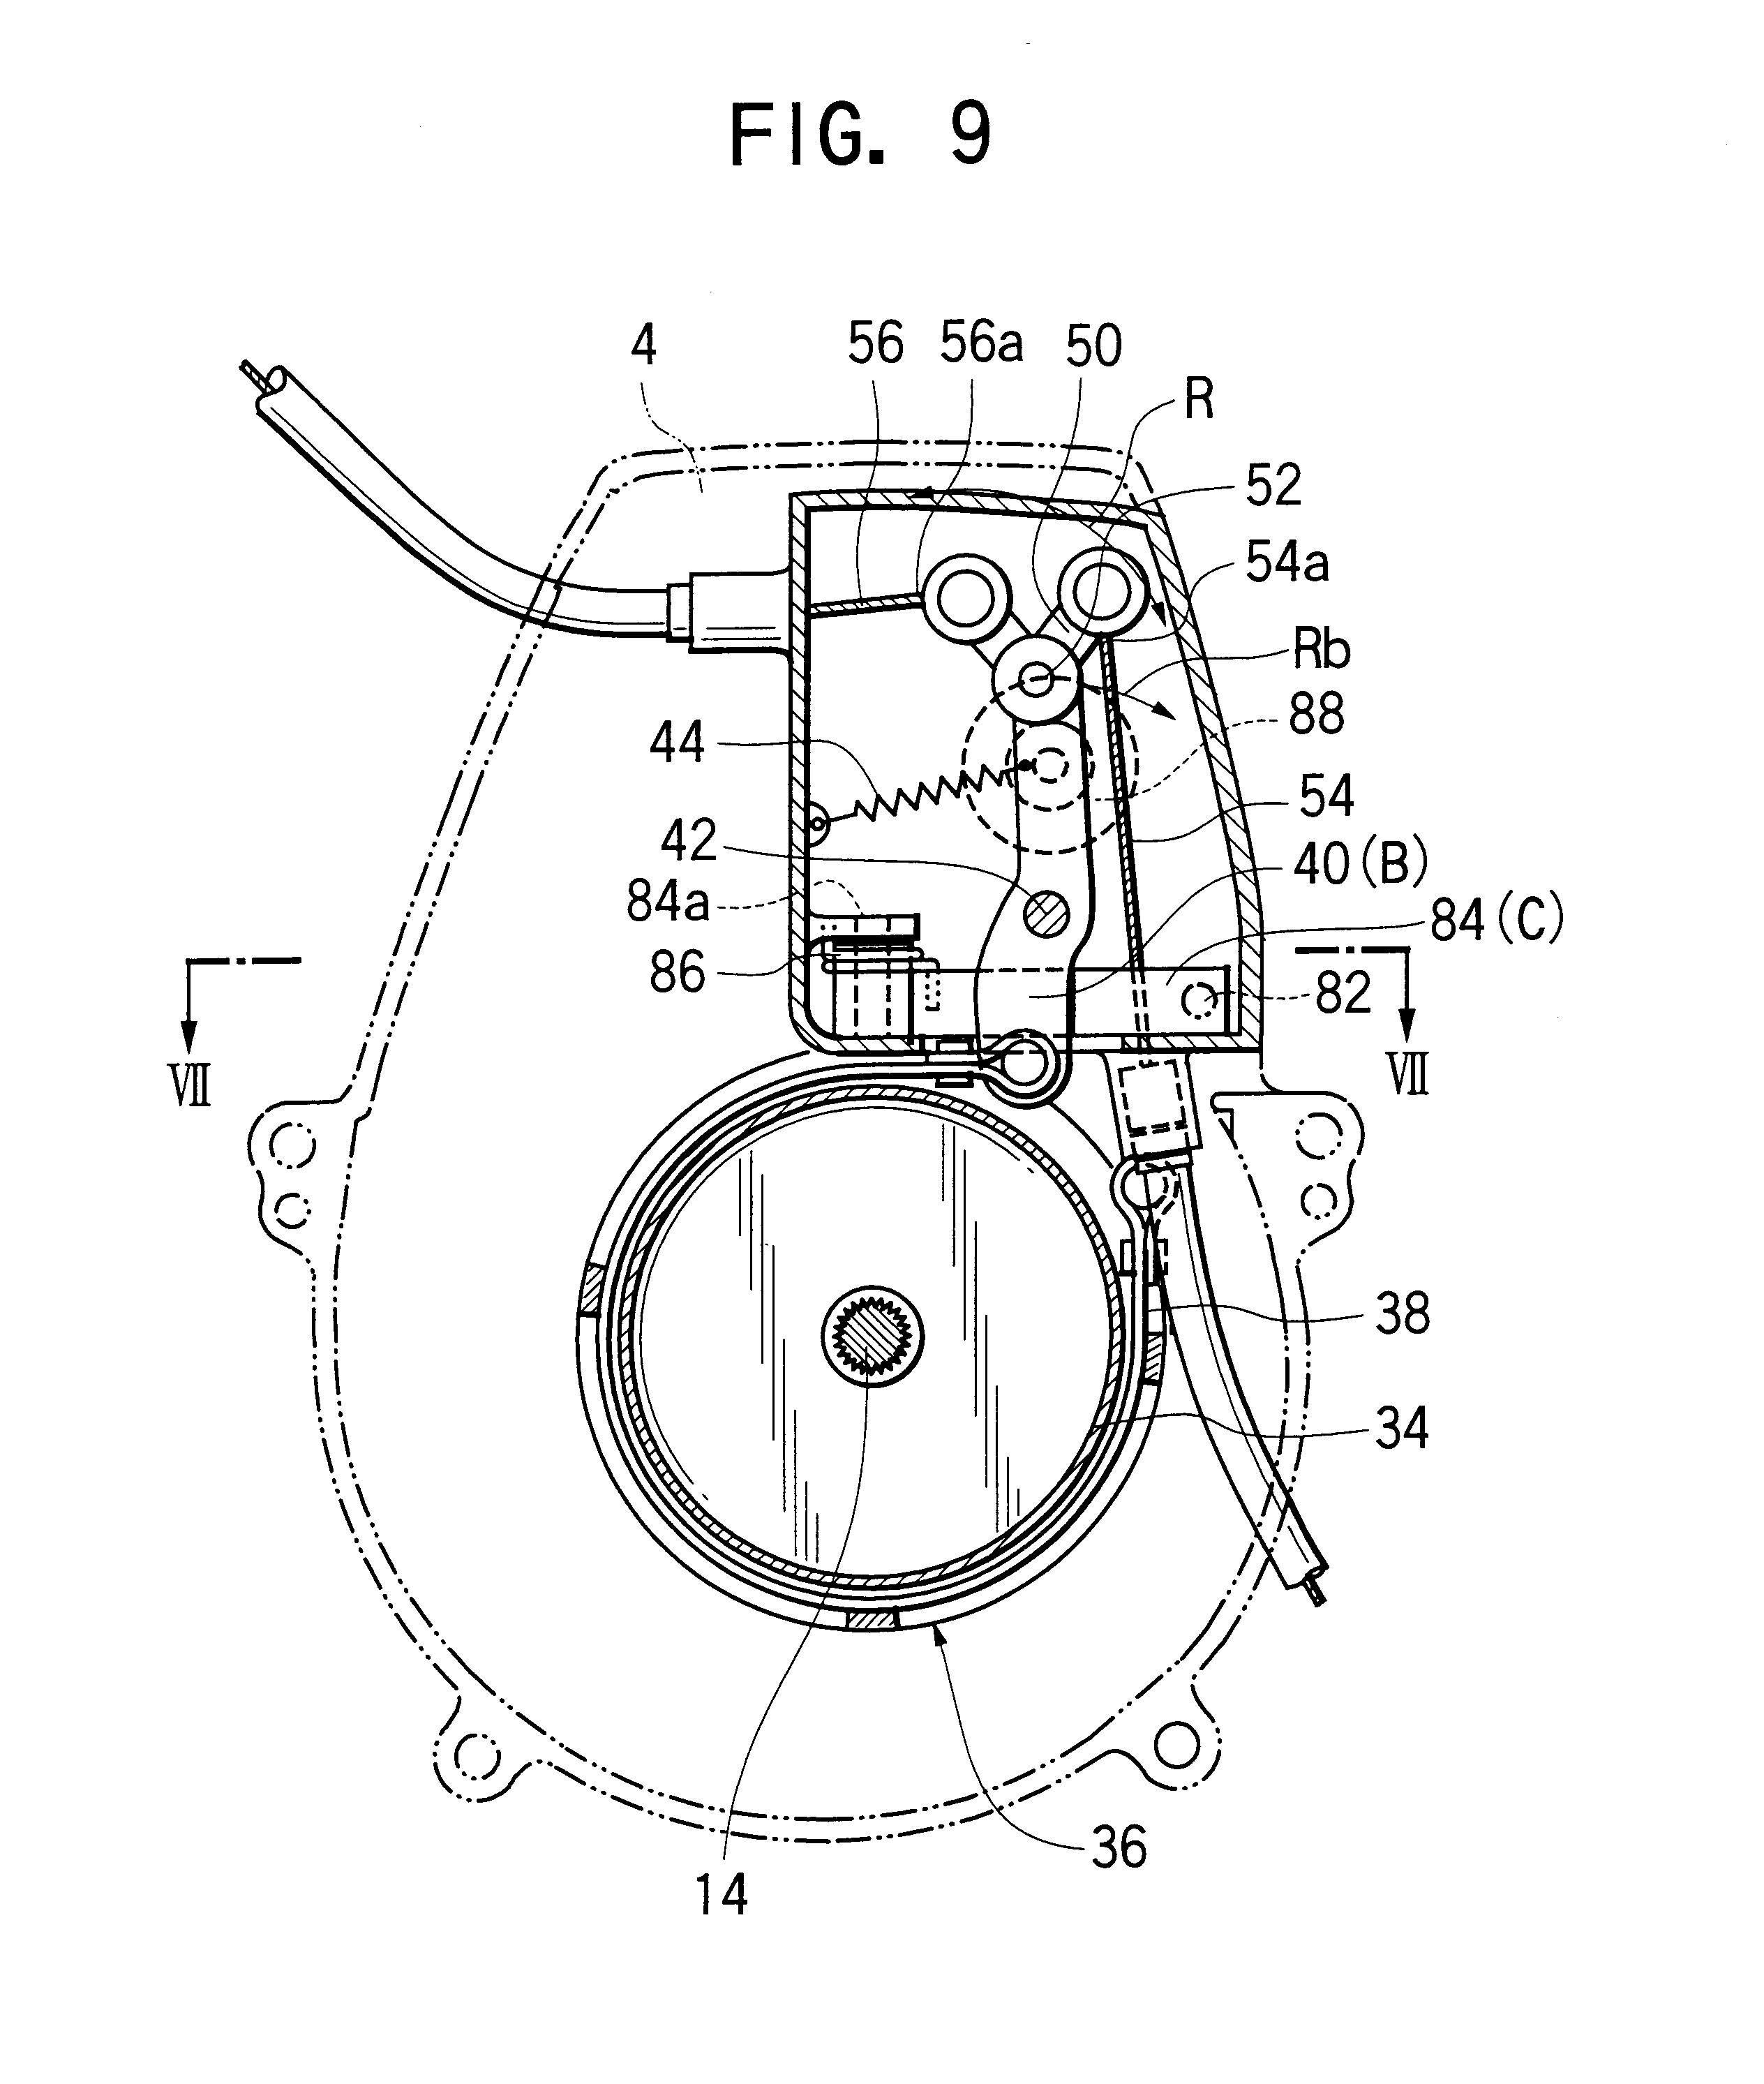 Combustion Engine Lever : Patent us trimming machine having braking device